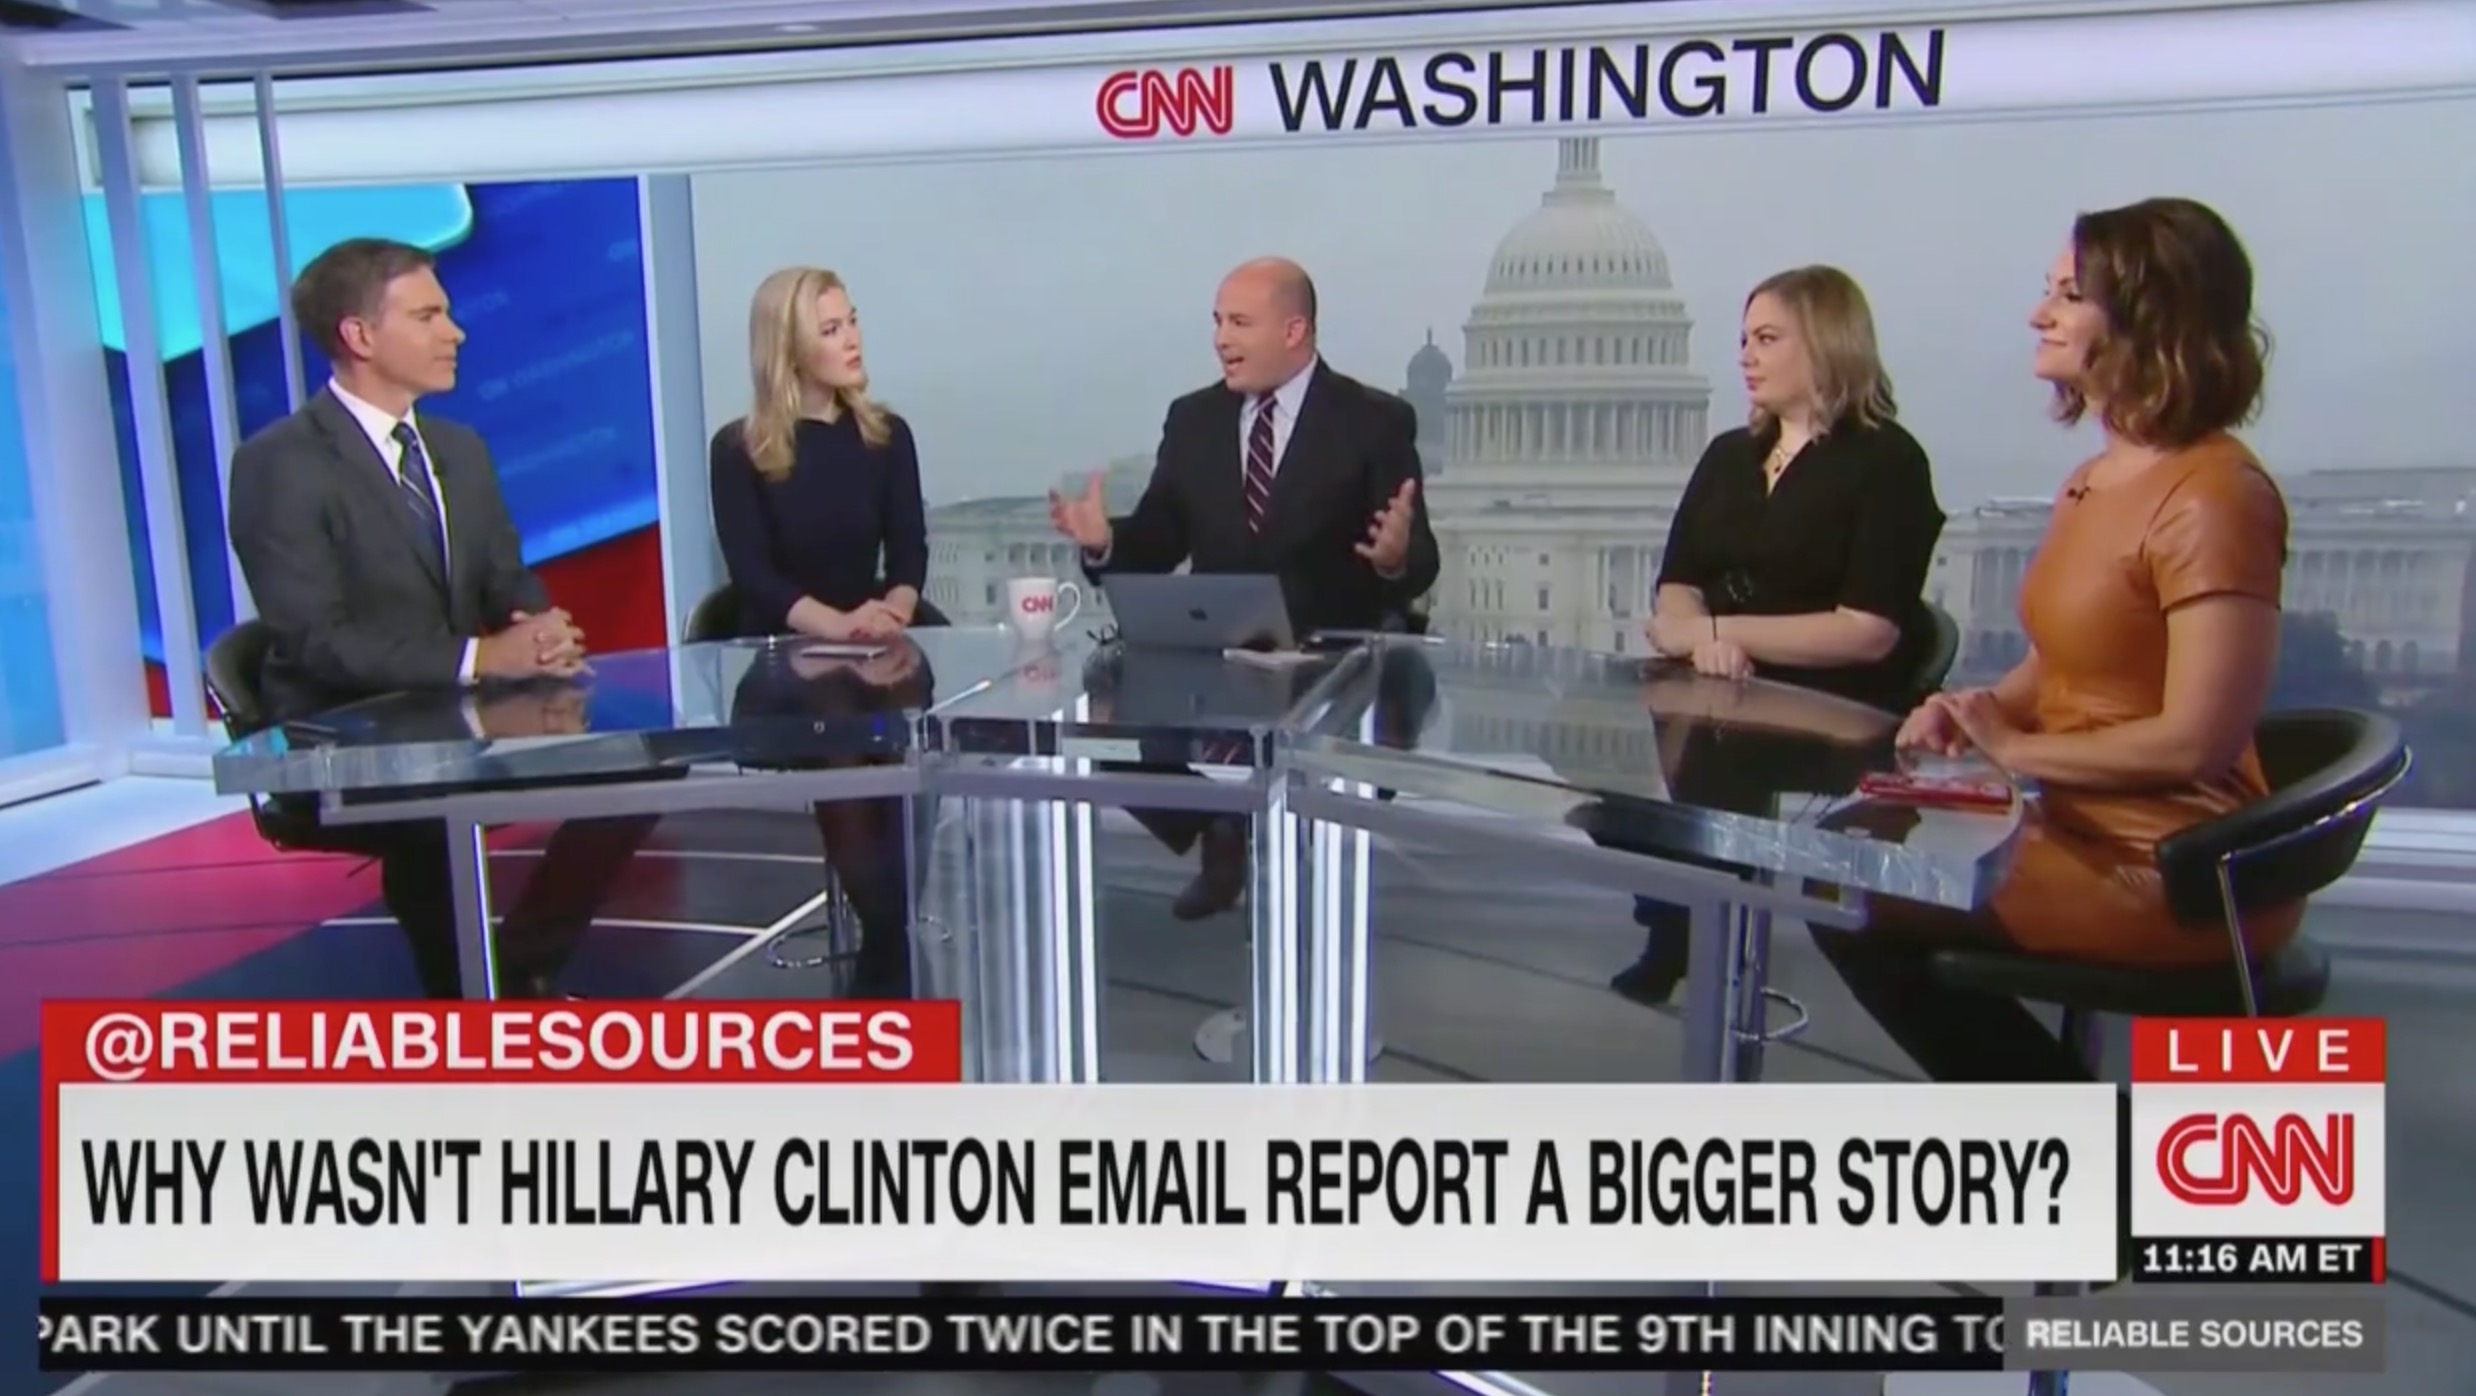 Brian Stelter: Why is State Dept's 'Anti-Climactic' Clinton Findings 'Not Getting More Airtime' After Years of Outcry?